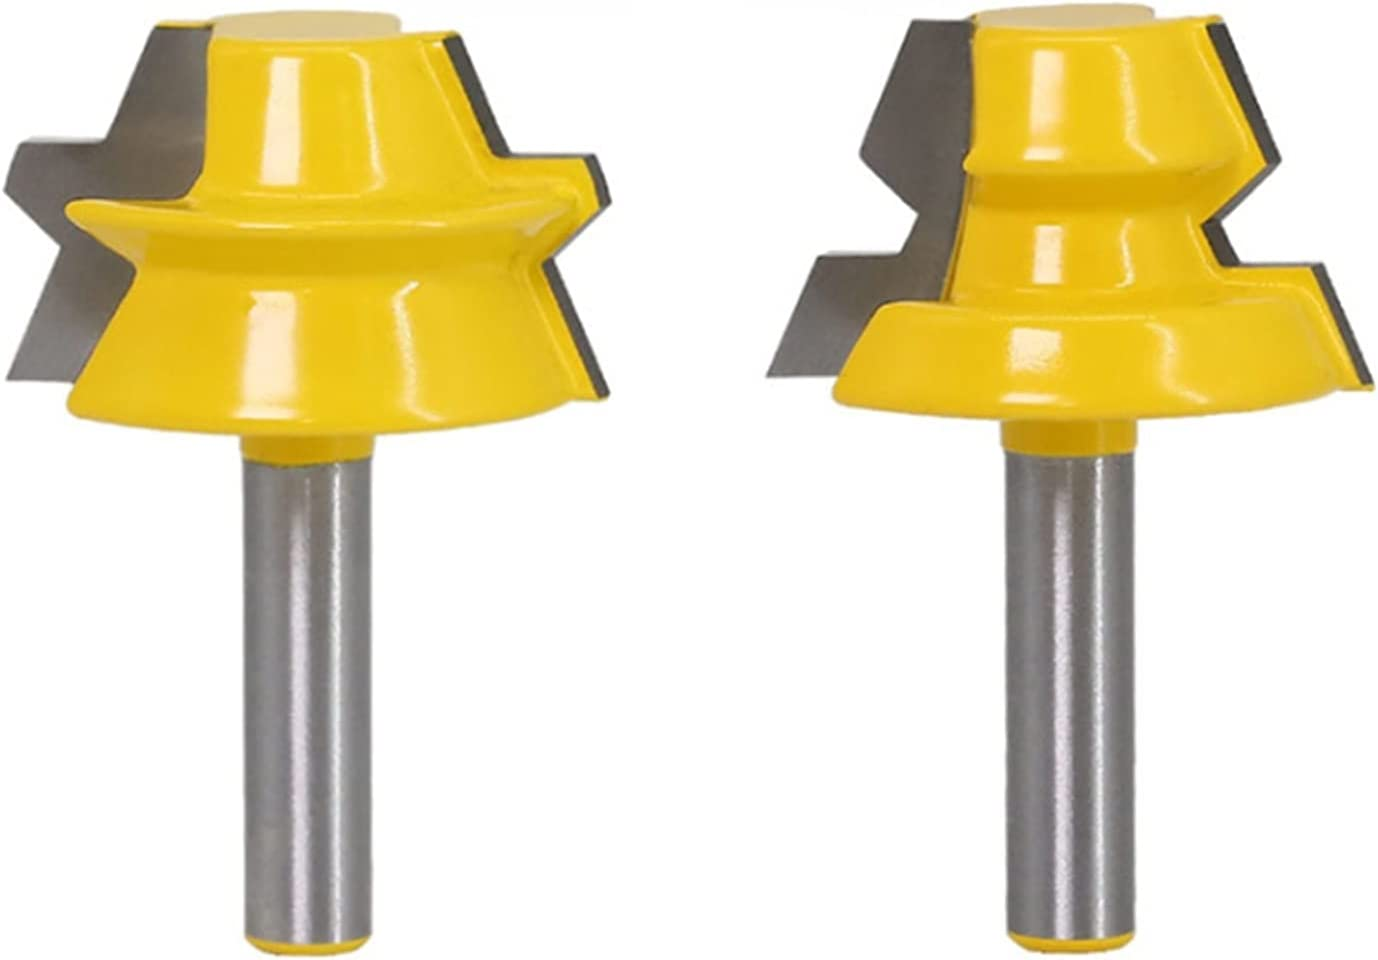 2Pcs Our shop OFFers the best service 8mm Shank Router Bit Octahedron M Wood Tenon Splice Max 68% OFF Mortise